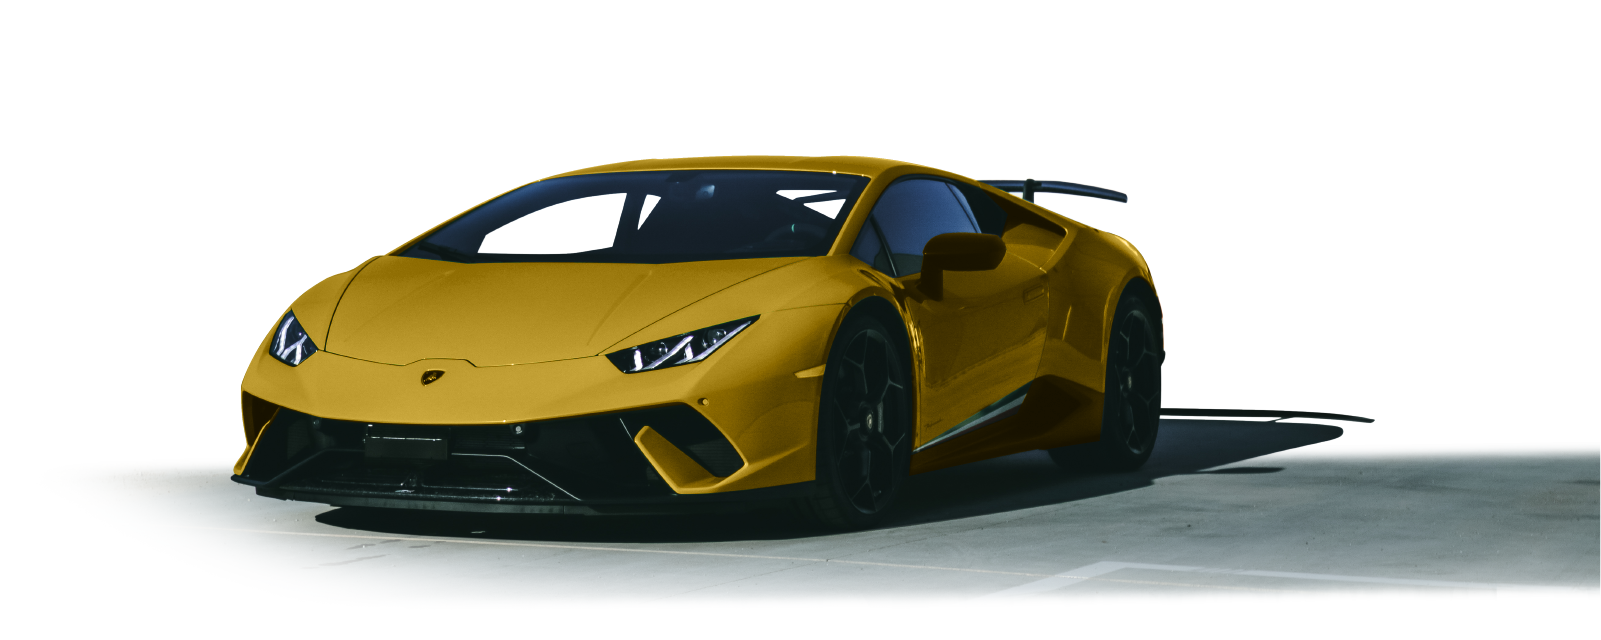 WAX-IT Detailing PPF Detail Paint Protection Film Full Lamborghini